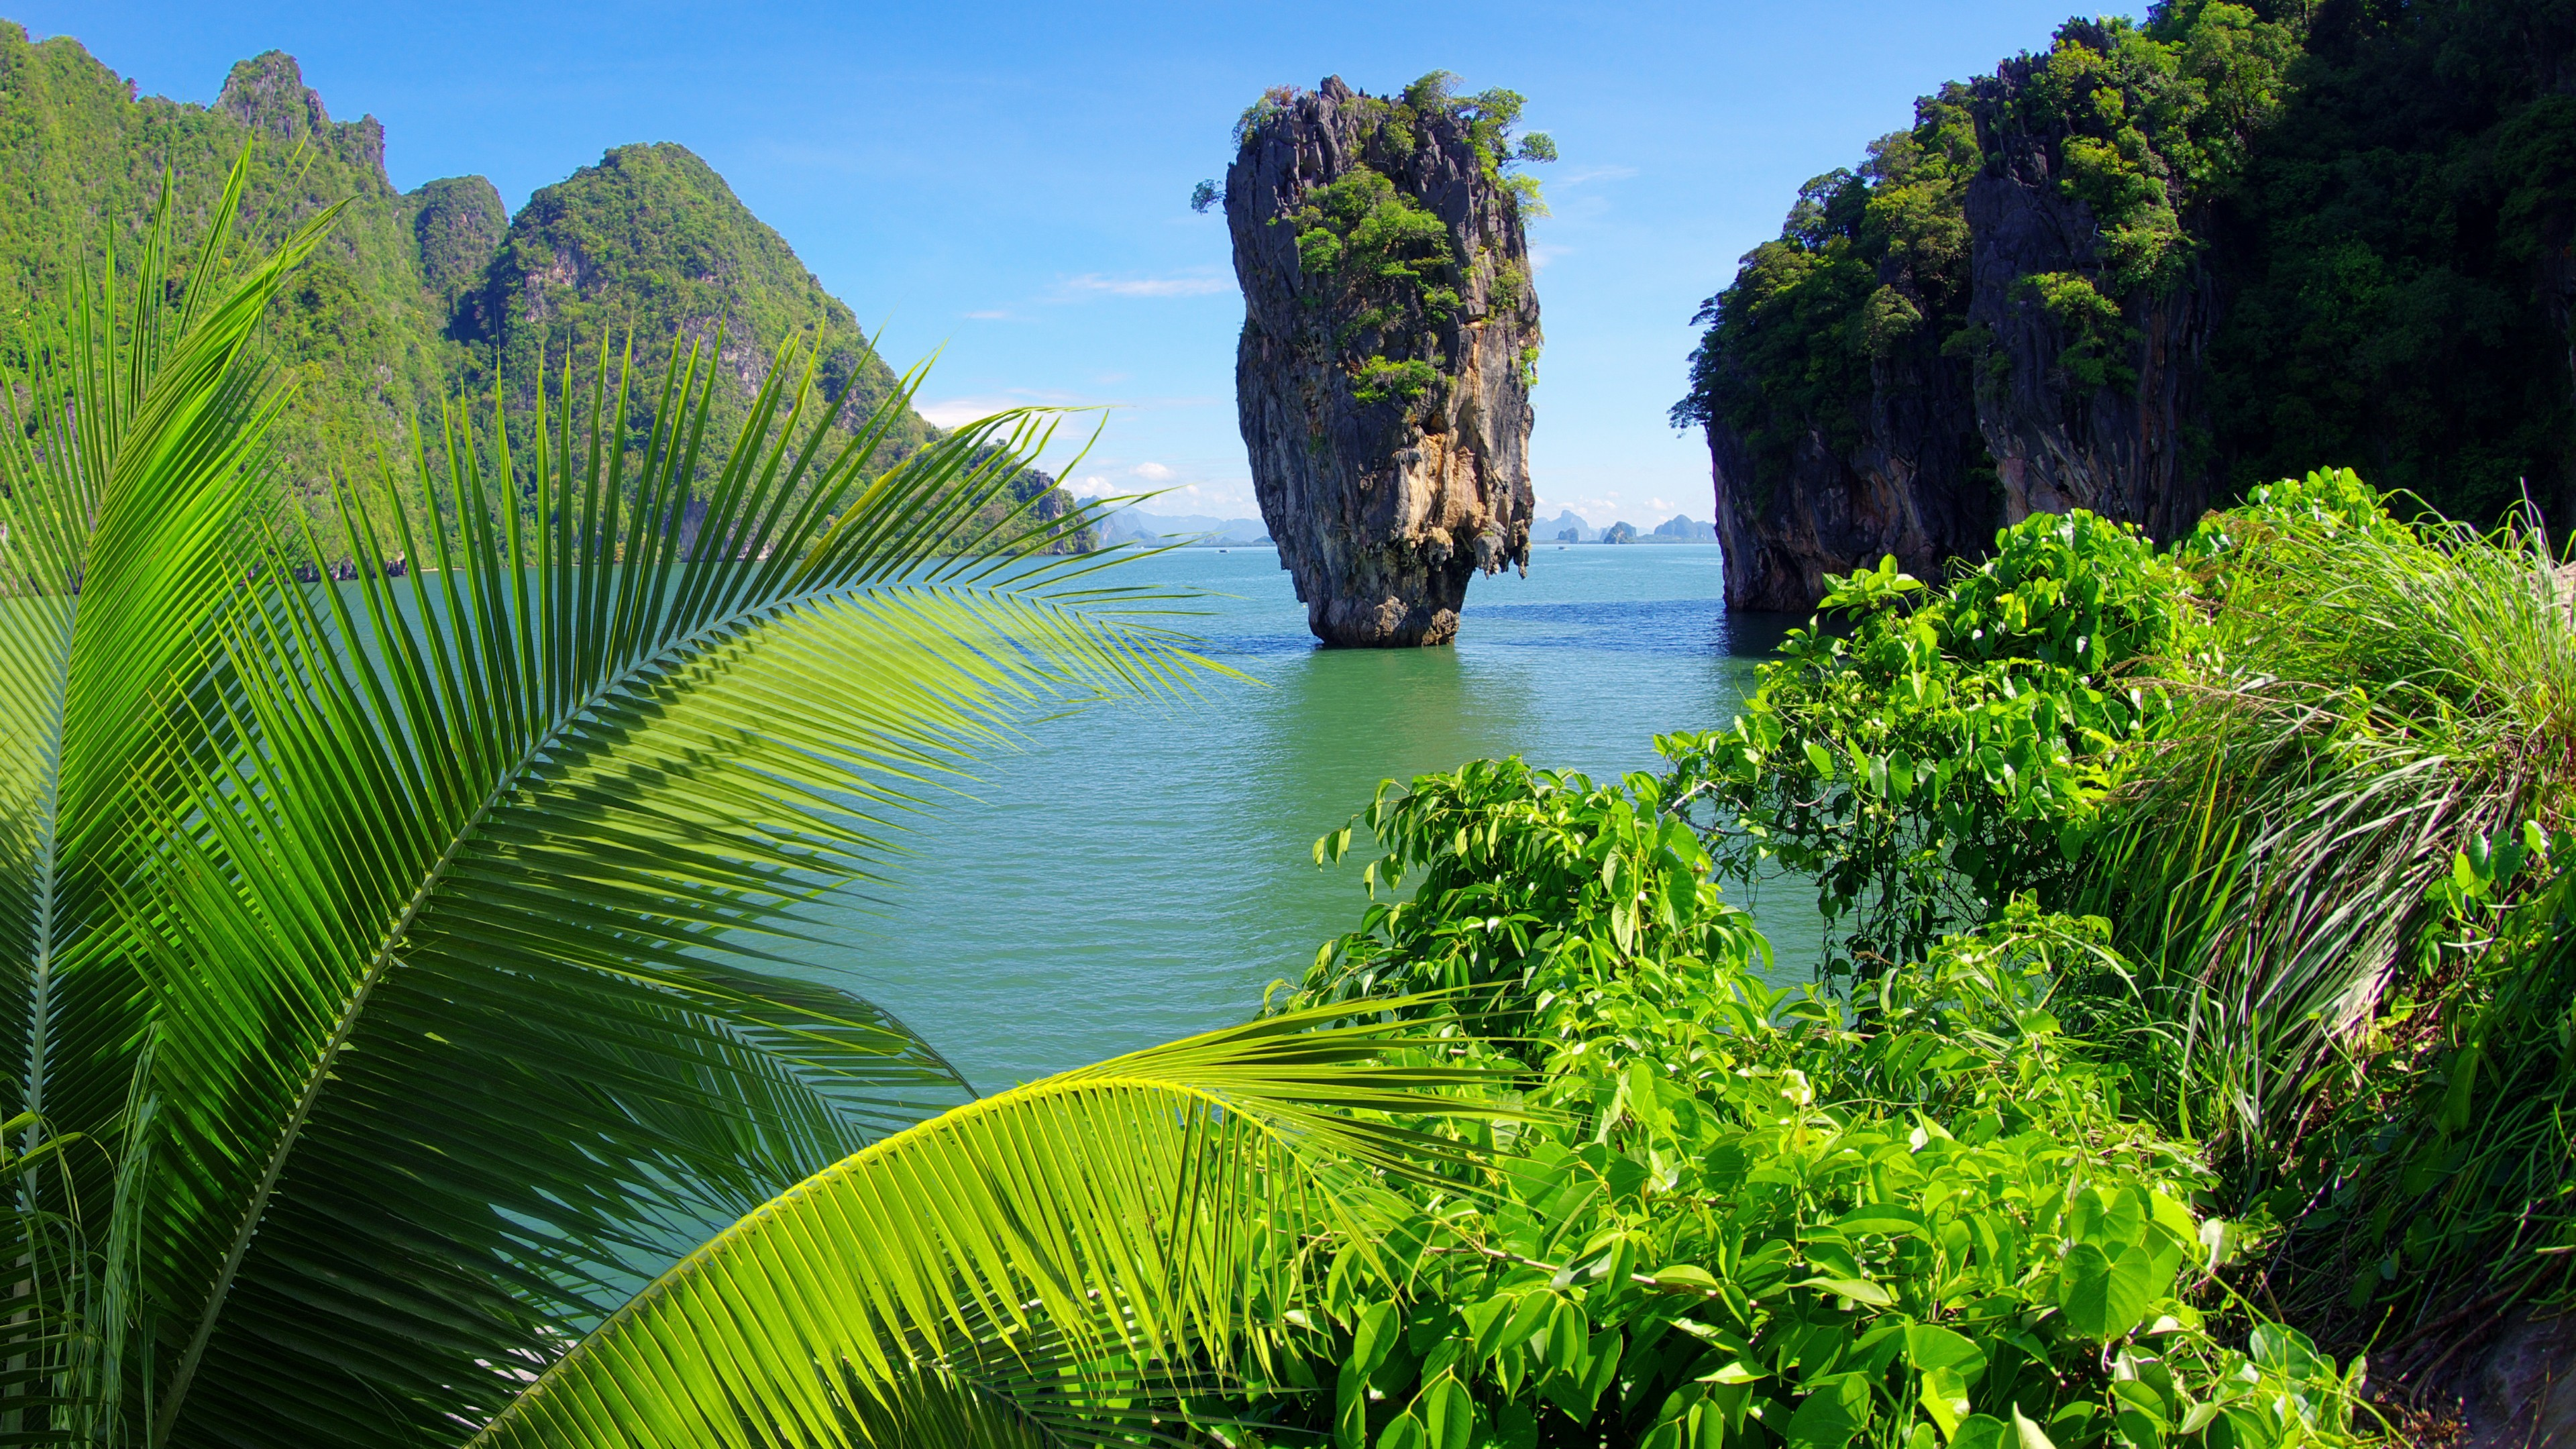 Res: 3840x2160, Ko Tapu (James Bond Island) Wallpaper | Wallpaper Studio 10 | Tens of  thousands HD and UltraHD wallpapers for Android, Windows and Xbox